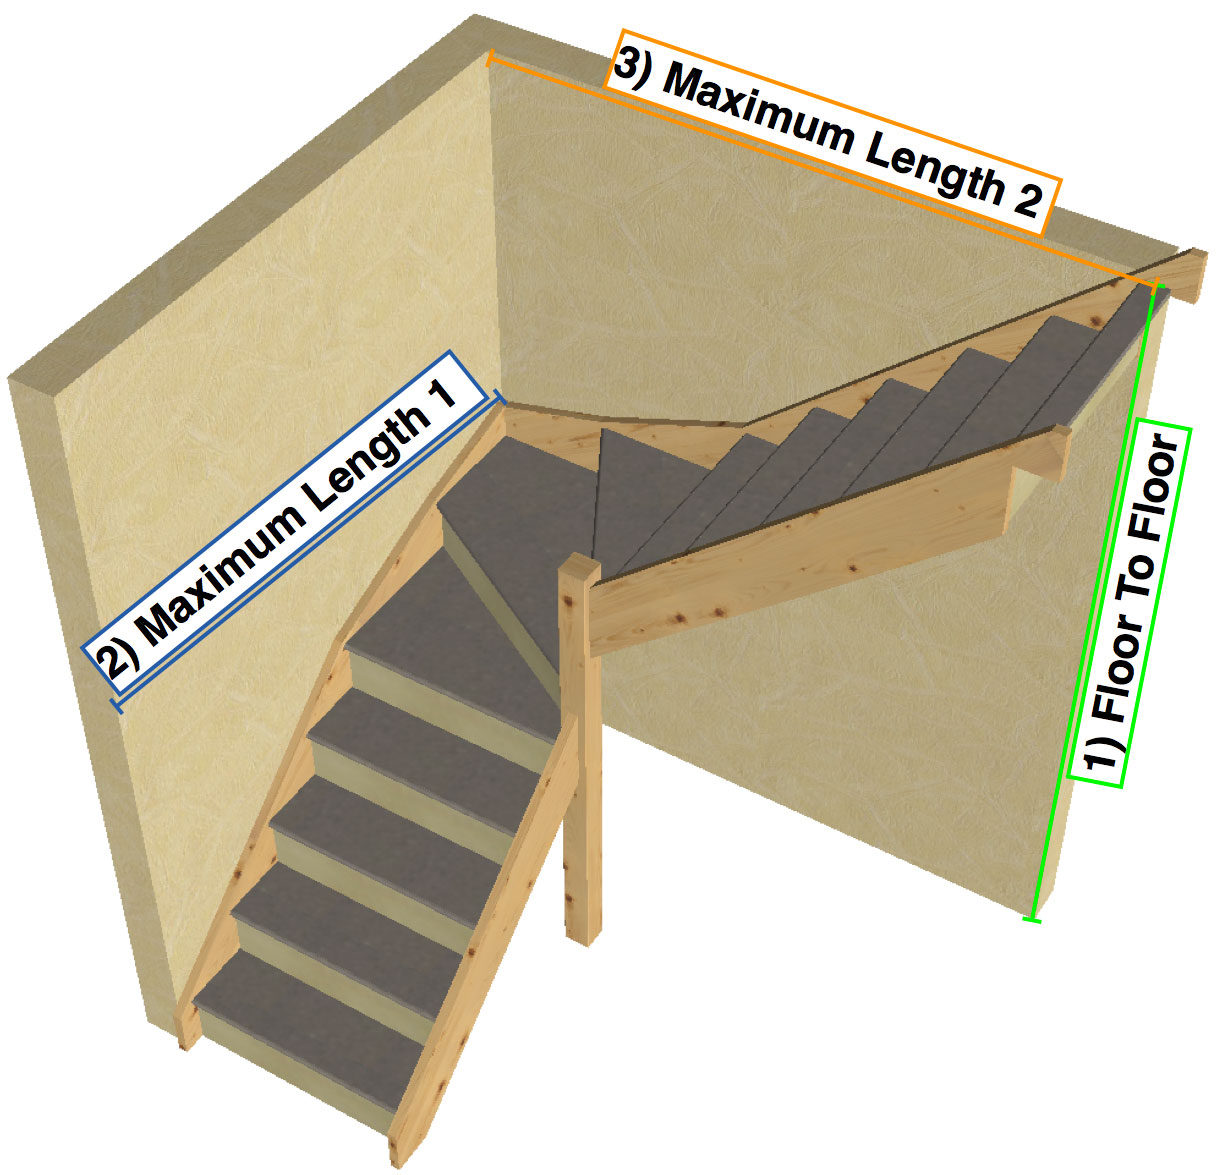 Tkstairs guide on how to measure a single turn staircase